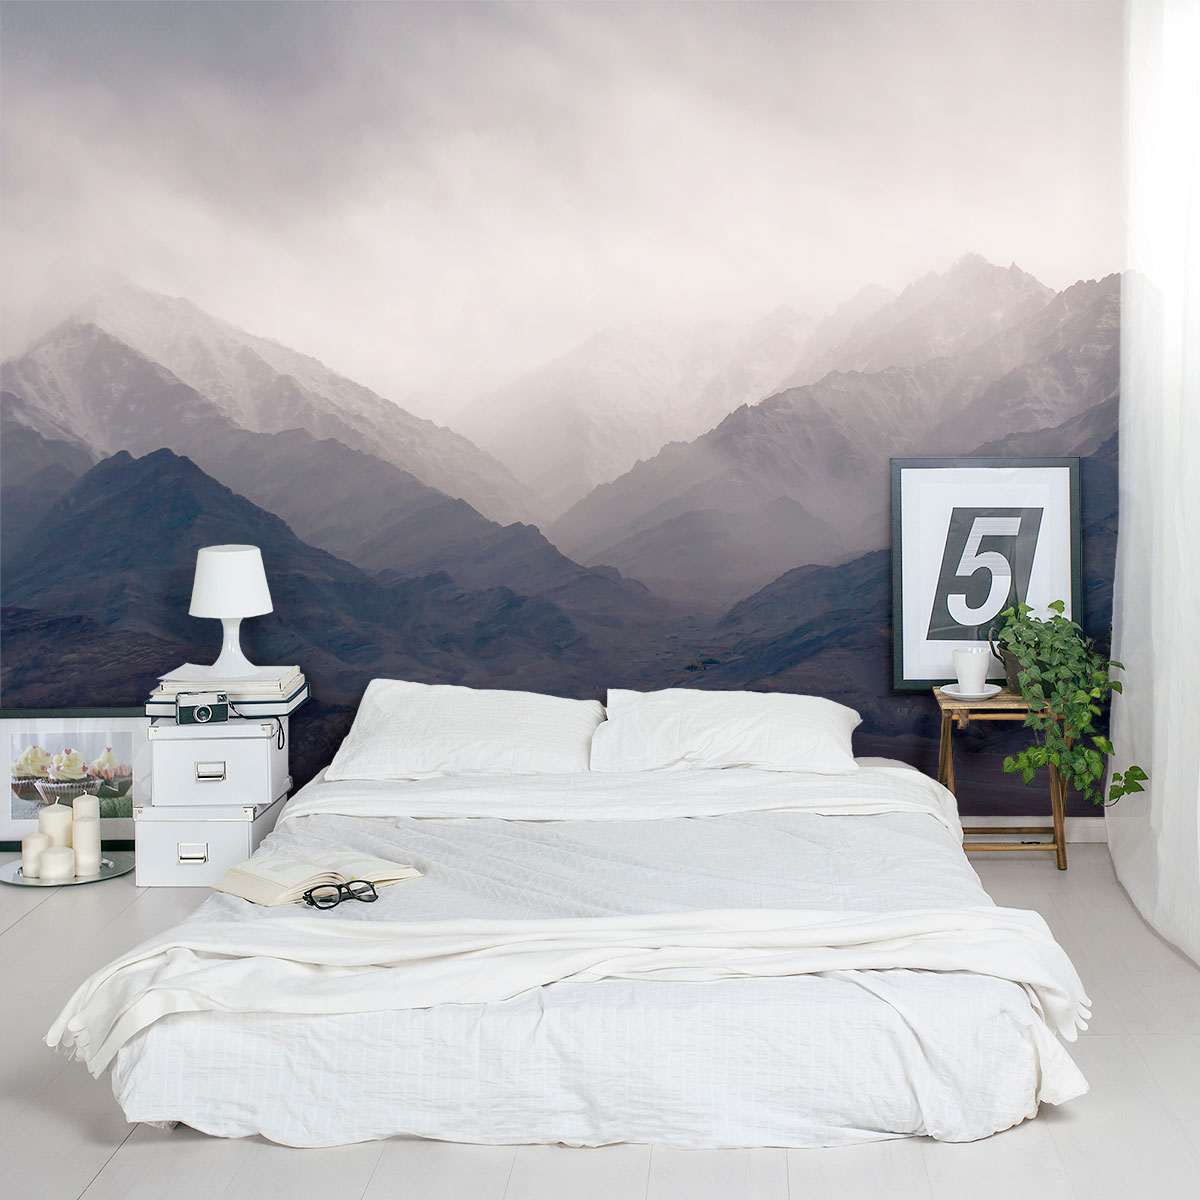 Wall: Misty Mountains Wall Mural